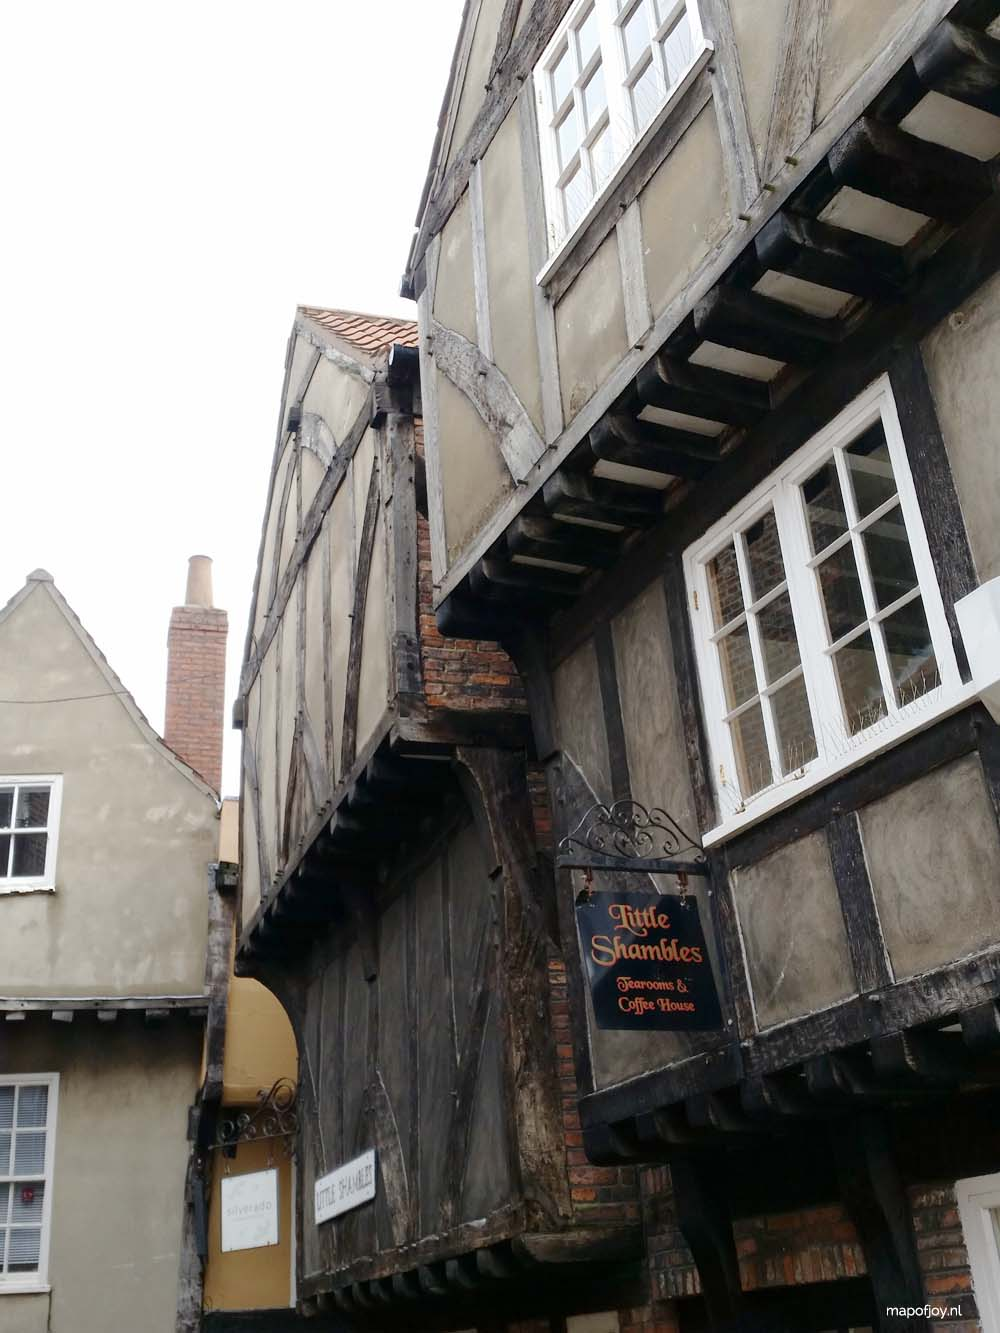 Shambles, York – Map of Joy